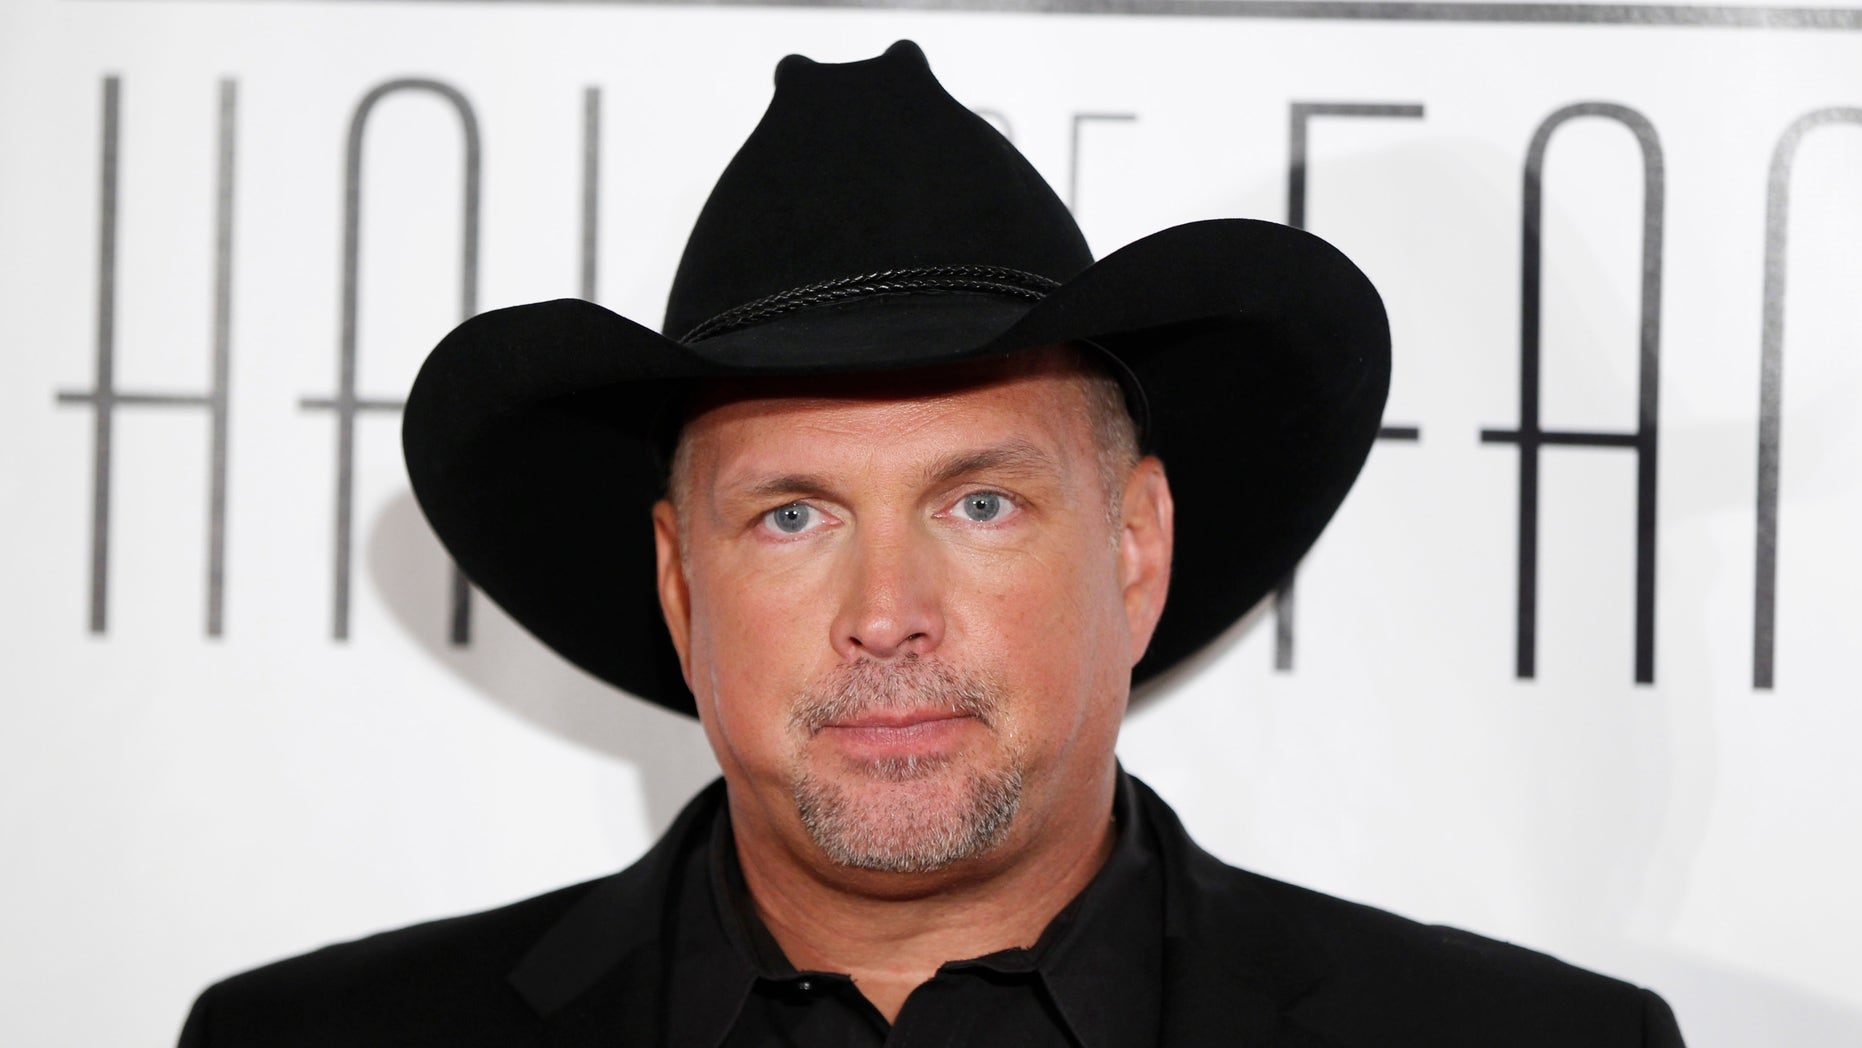 Singer Garth Brooks arrives for the Songwriters Hall of Fame awards in New York June 16, 2011.  REUTERS/Lucas Jackson (UNITED STATES - Tags: ENTERTAINMENT HEADSHOT) - RTR2NR81